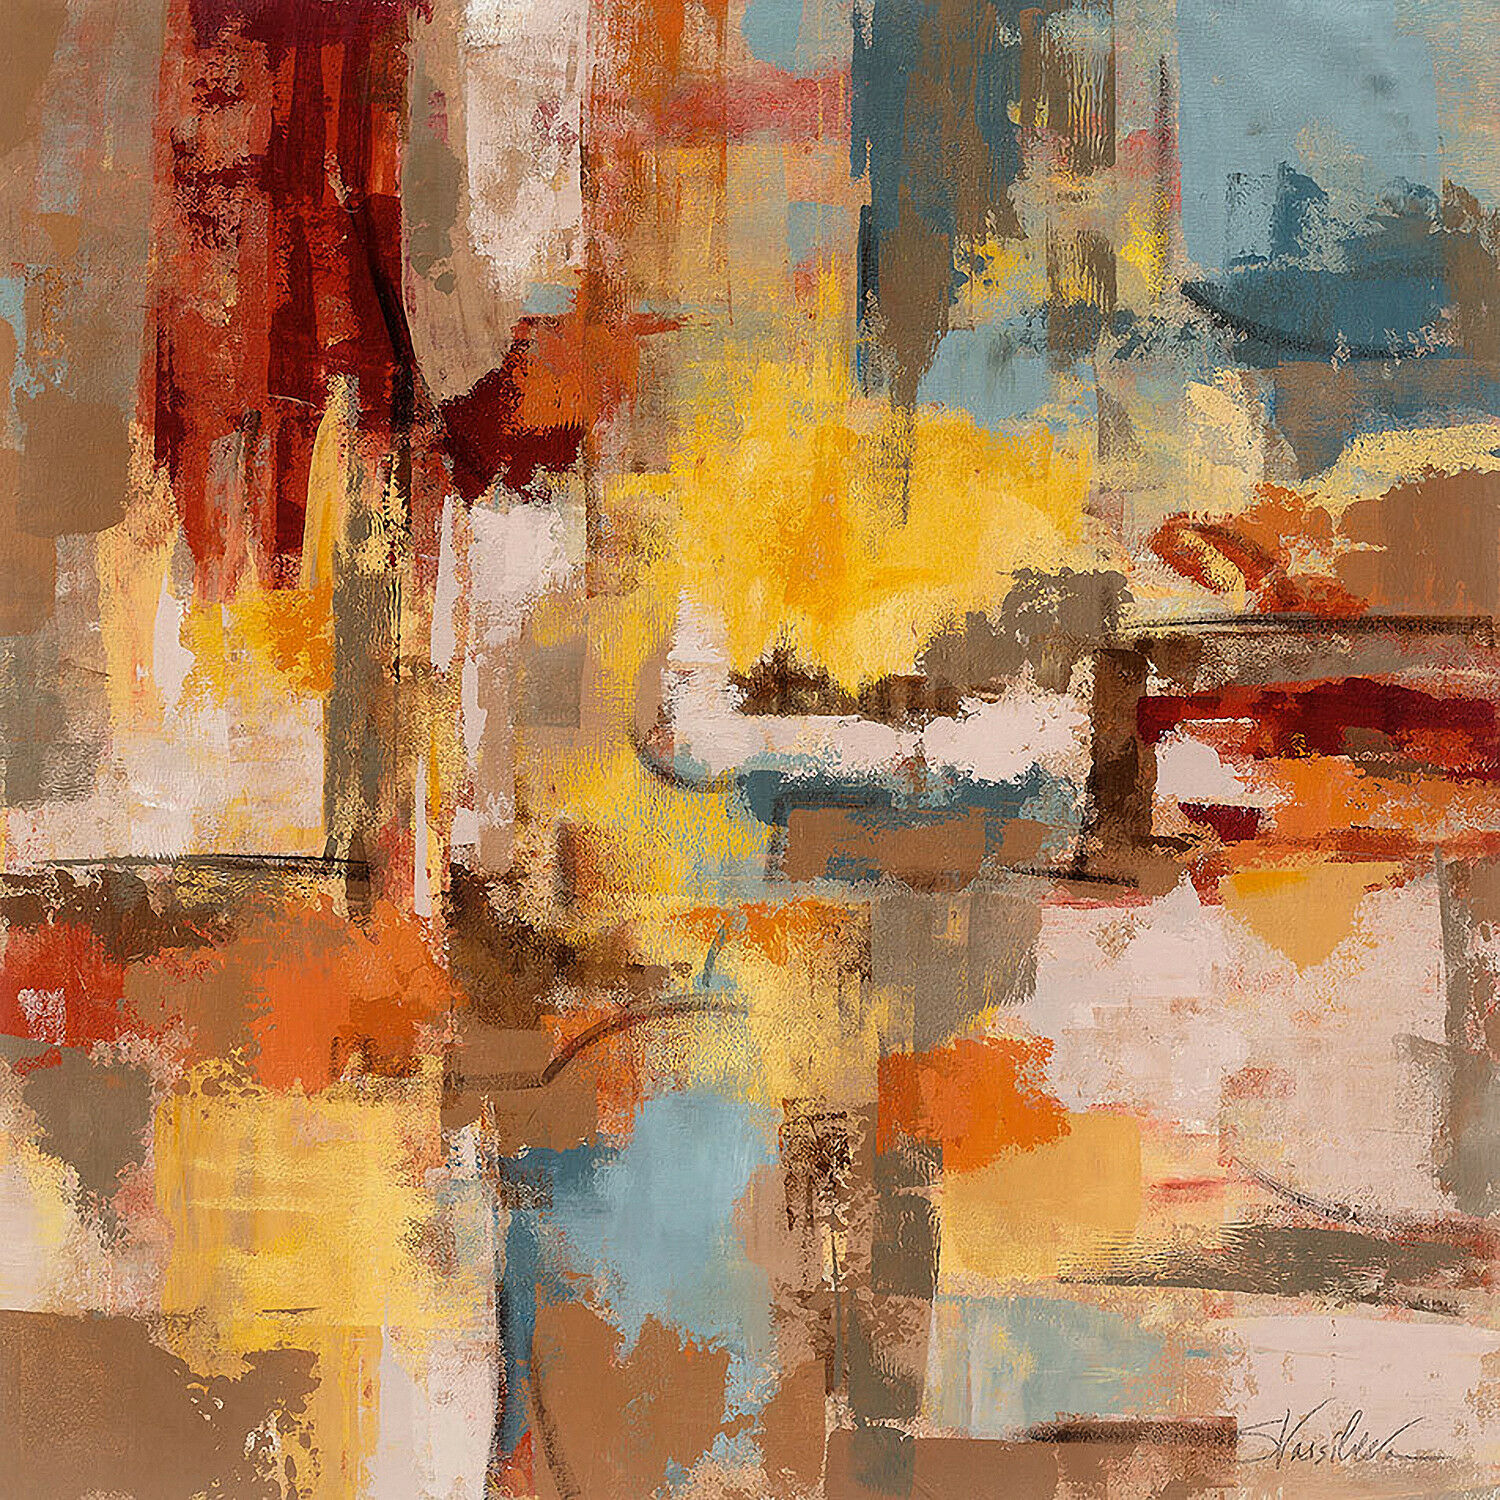 Abstract Landscape XI  - CANVAS or PRINT WALL ART